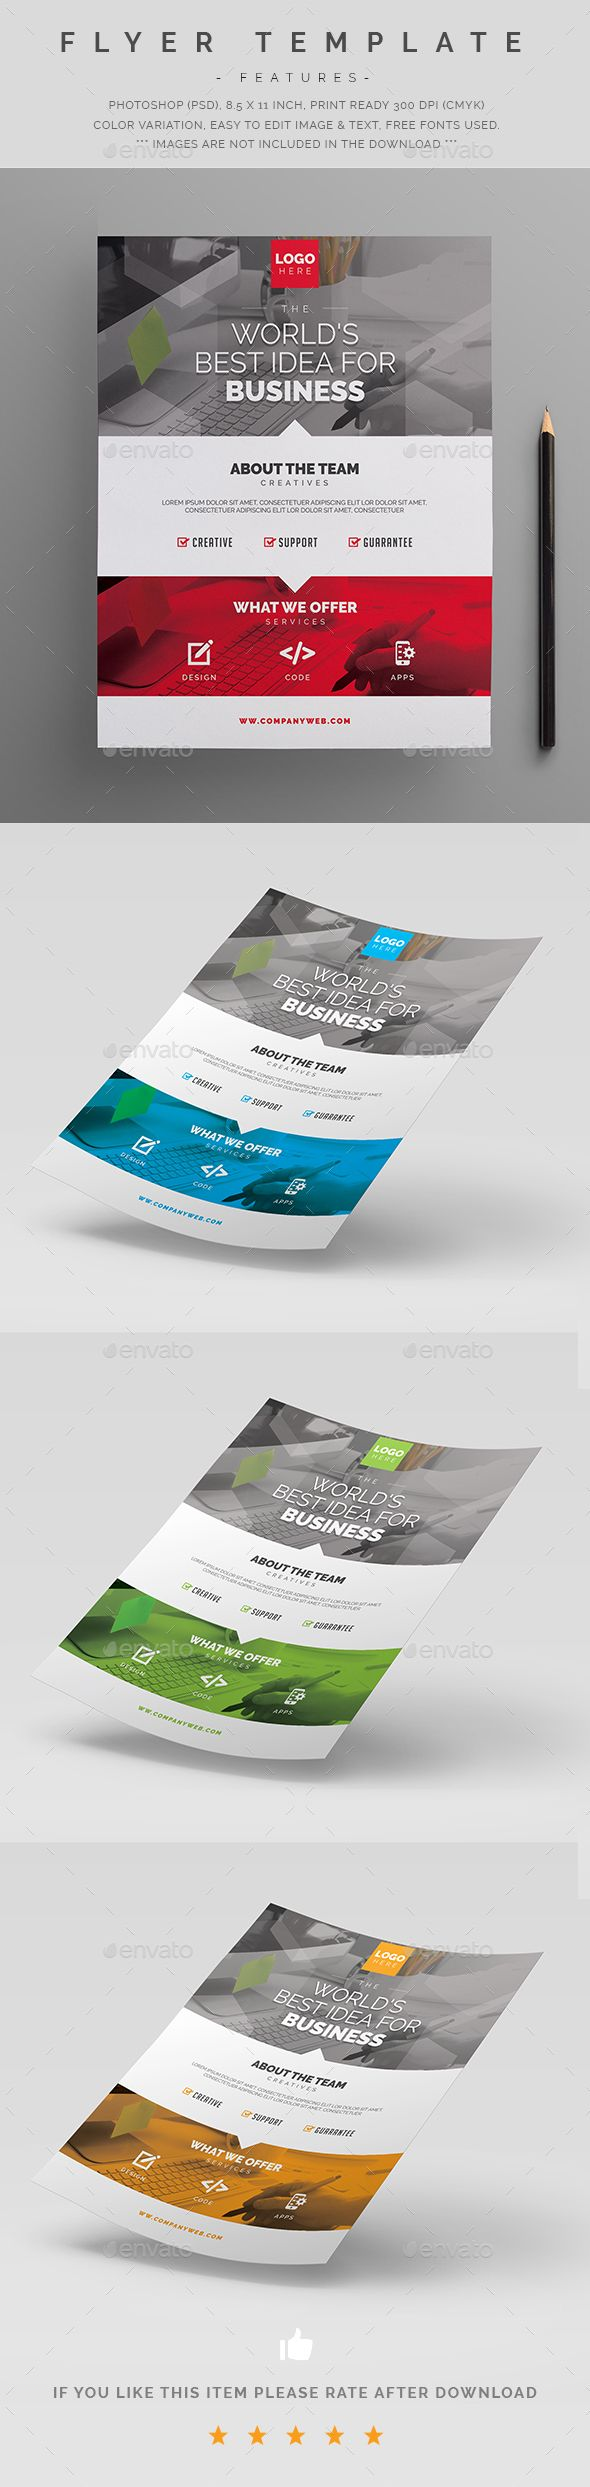 Business Flyer Template PSD                                                                                                                                                                                 More